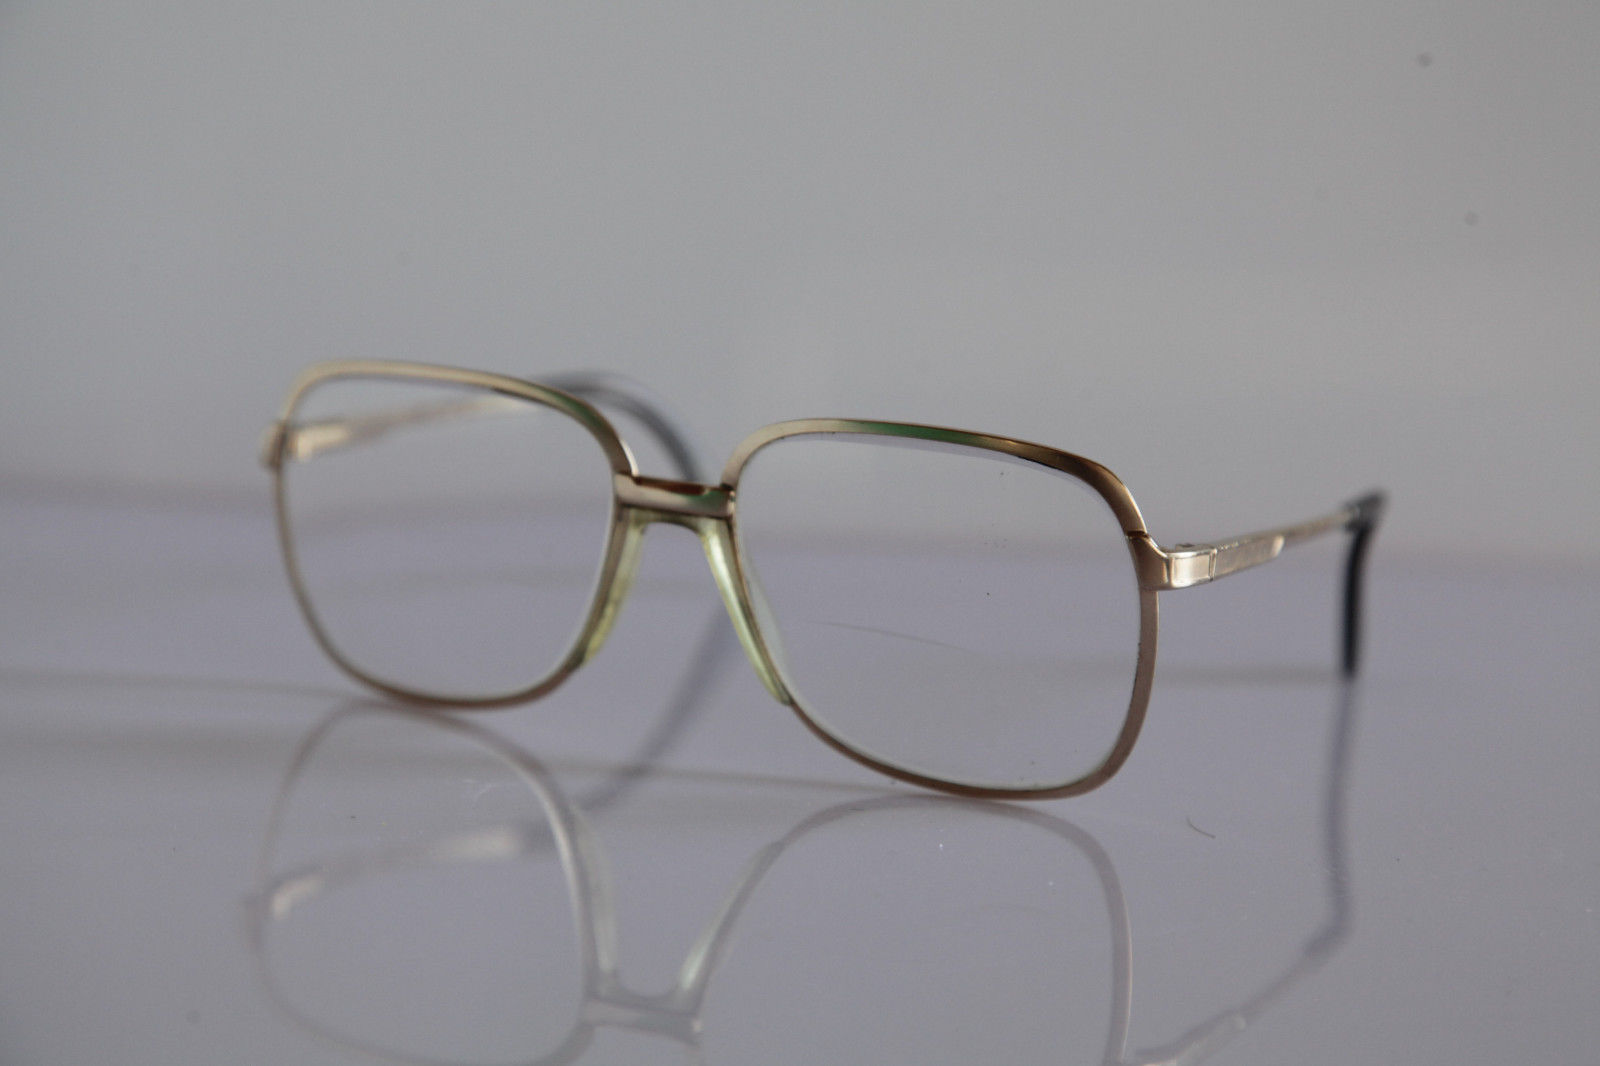 RODENSTOCK GP Eyewear, RODAFLEX, Gold  Frame,  RX-Able Prescription lens.